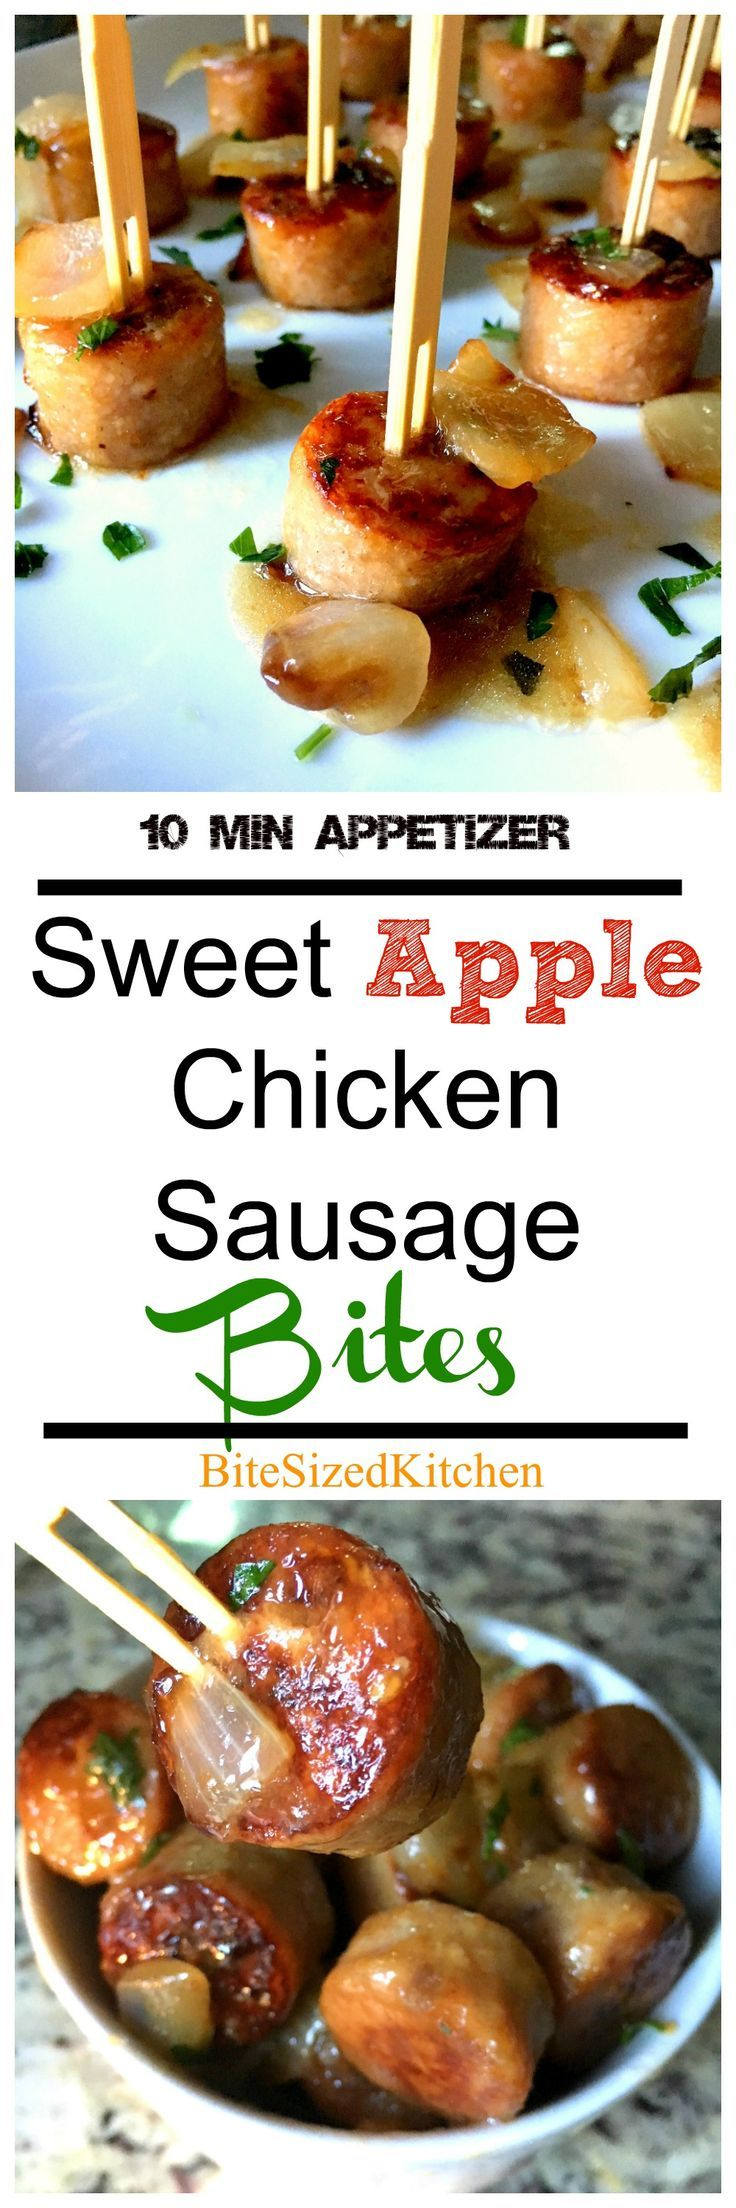 Easy and quick appetizer! These Sweet Apple Chicken Sausage Bites are so delicious and done in 10 minutes! The perfect party or crowd appetizer!